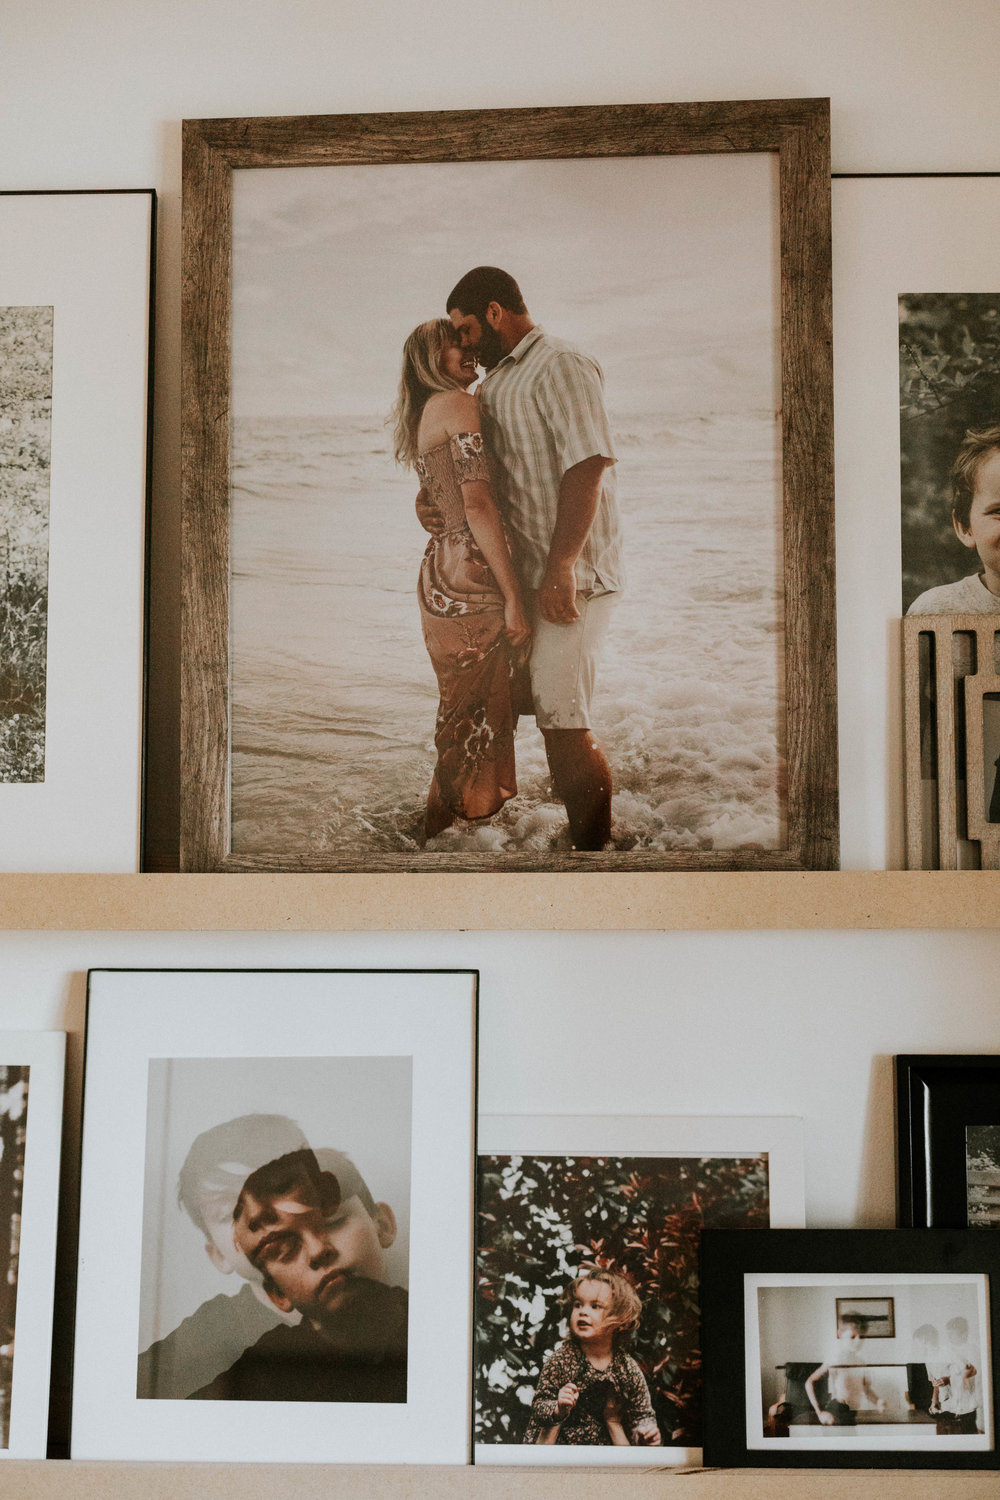 CREATE THIS PHOTO LEDGE FOR YOUR OWN HOME TO DISPLAY YOUR FAVORITE MEMORIES